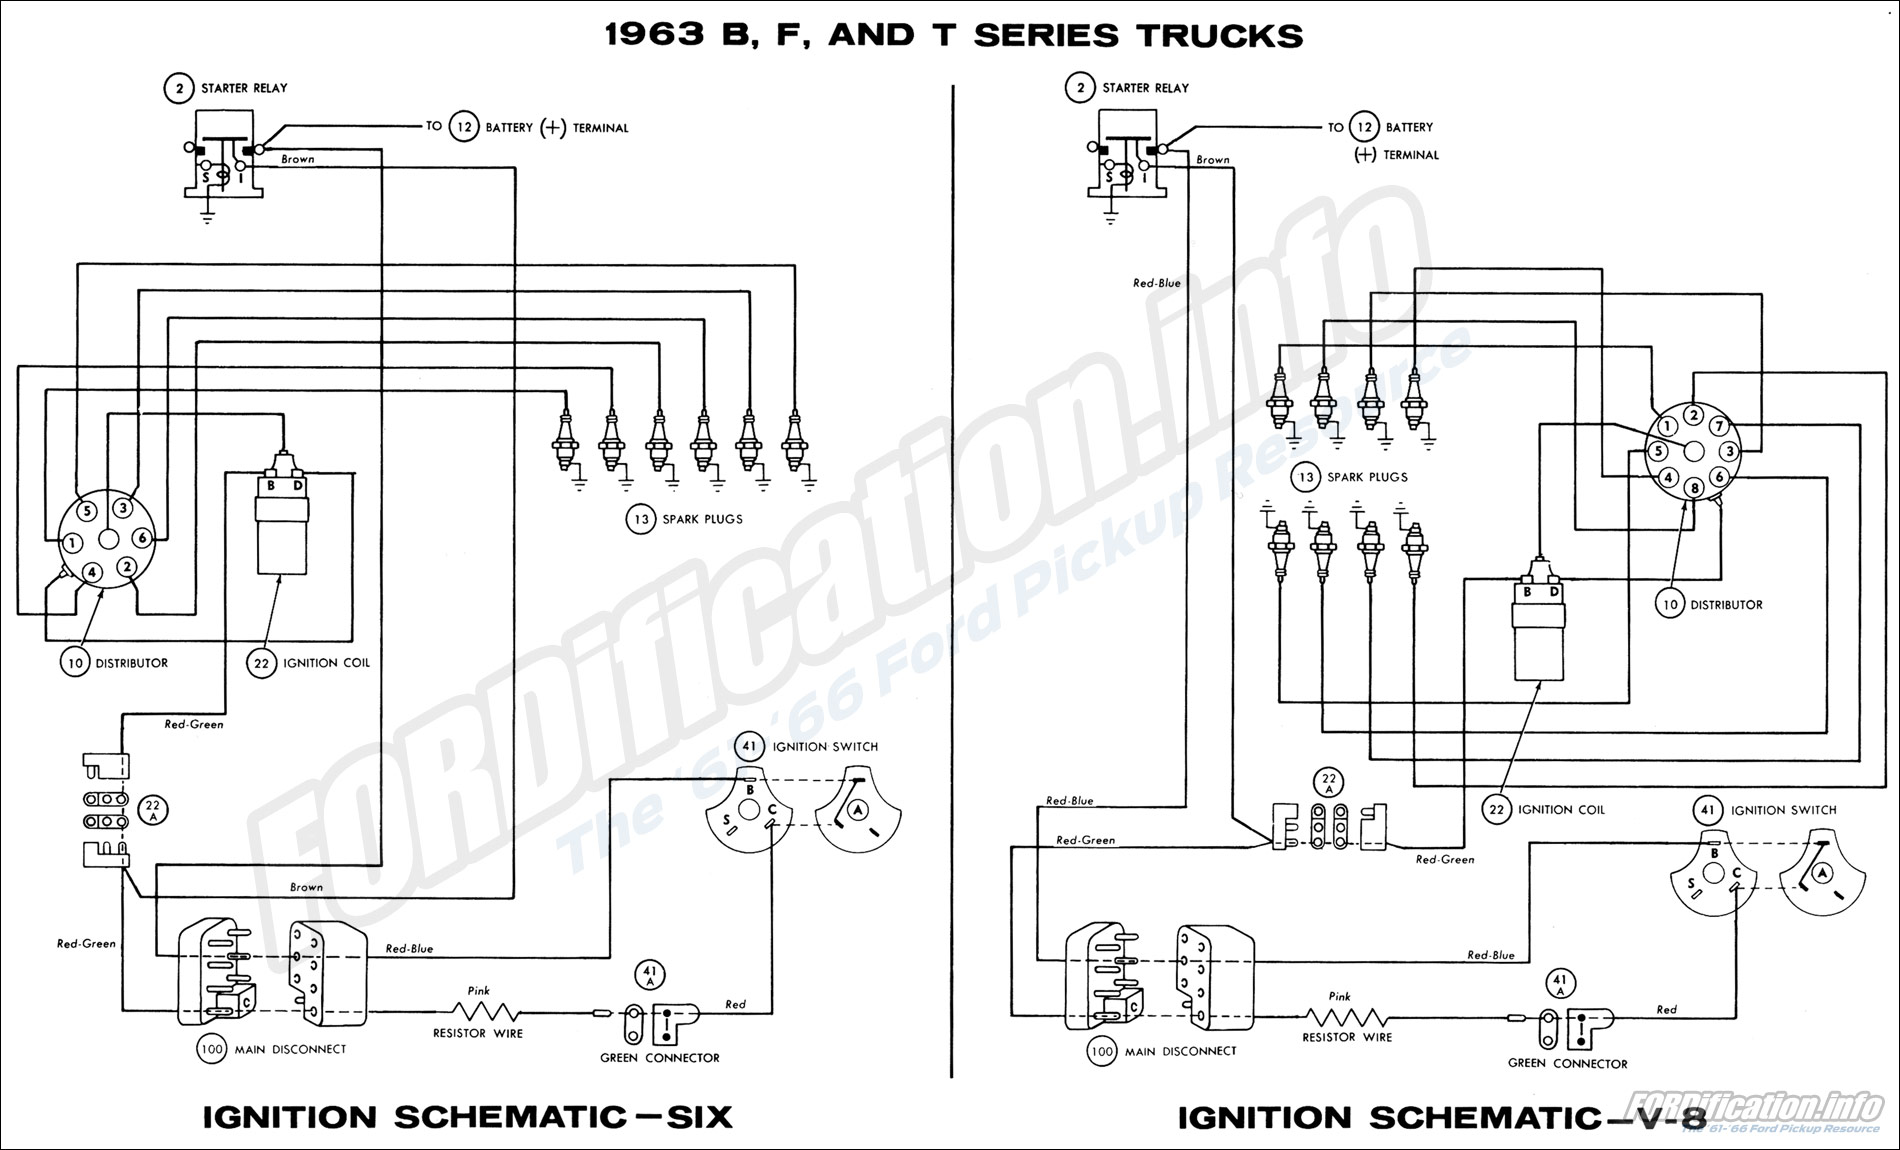 1963 ford truck wiring diagrams - fordification.info - the ... 1963 ford f100 wiring 1963 ford f100 brake diagram